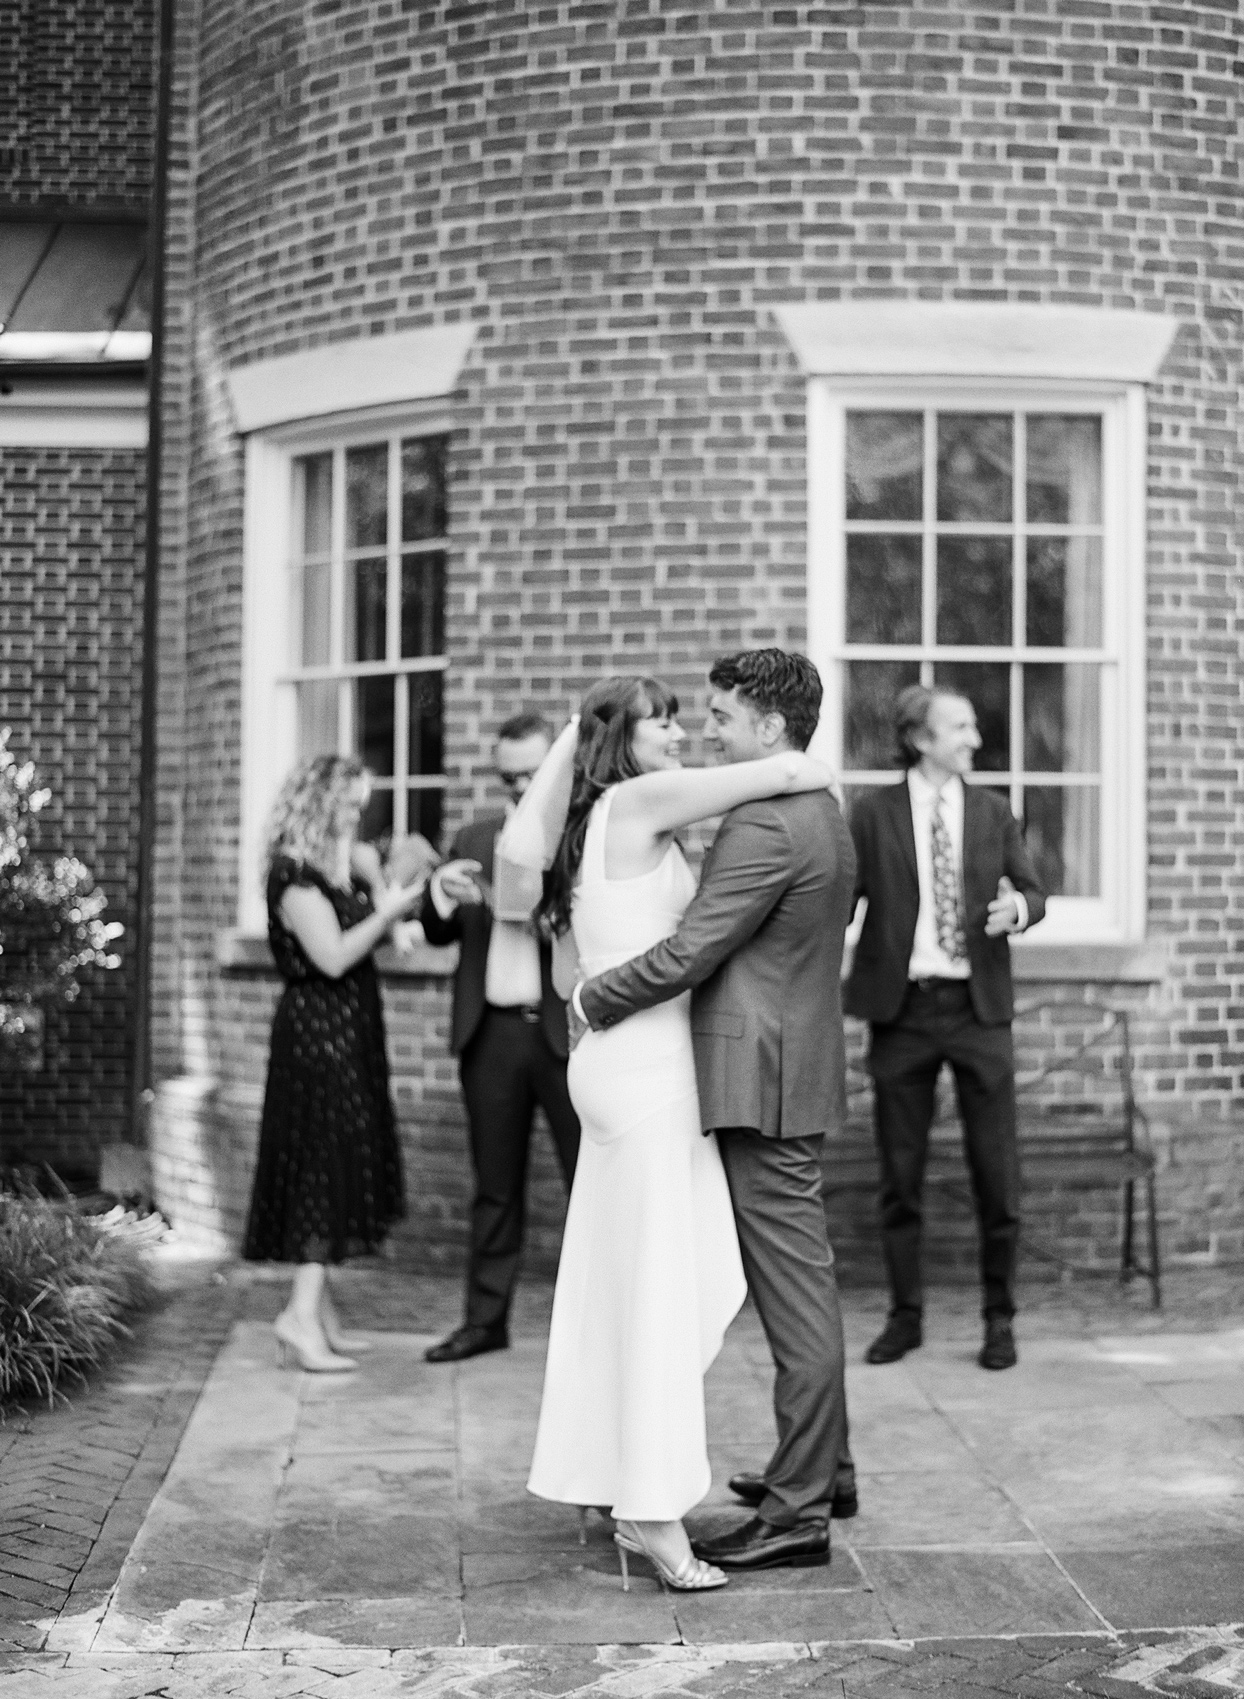 bride and groom sharing first dance in courtyard